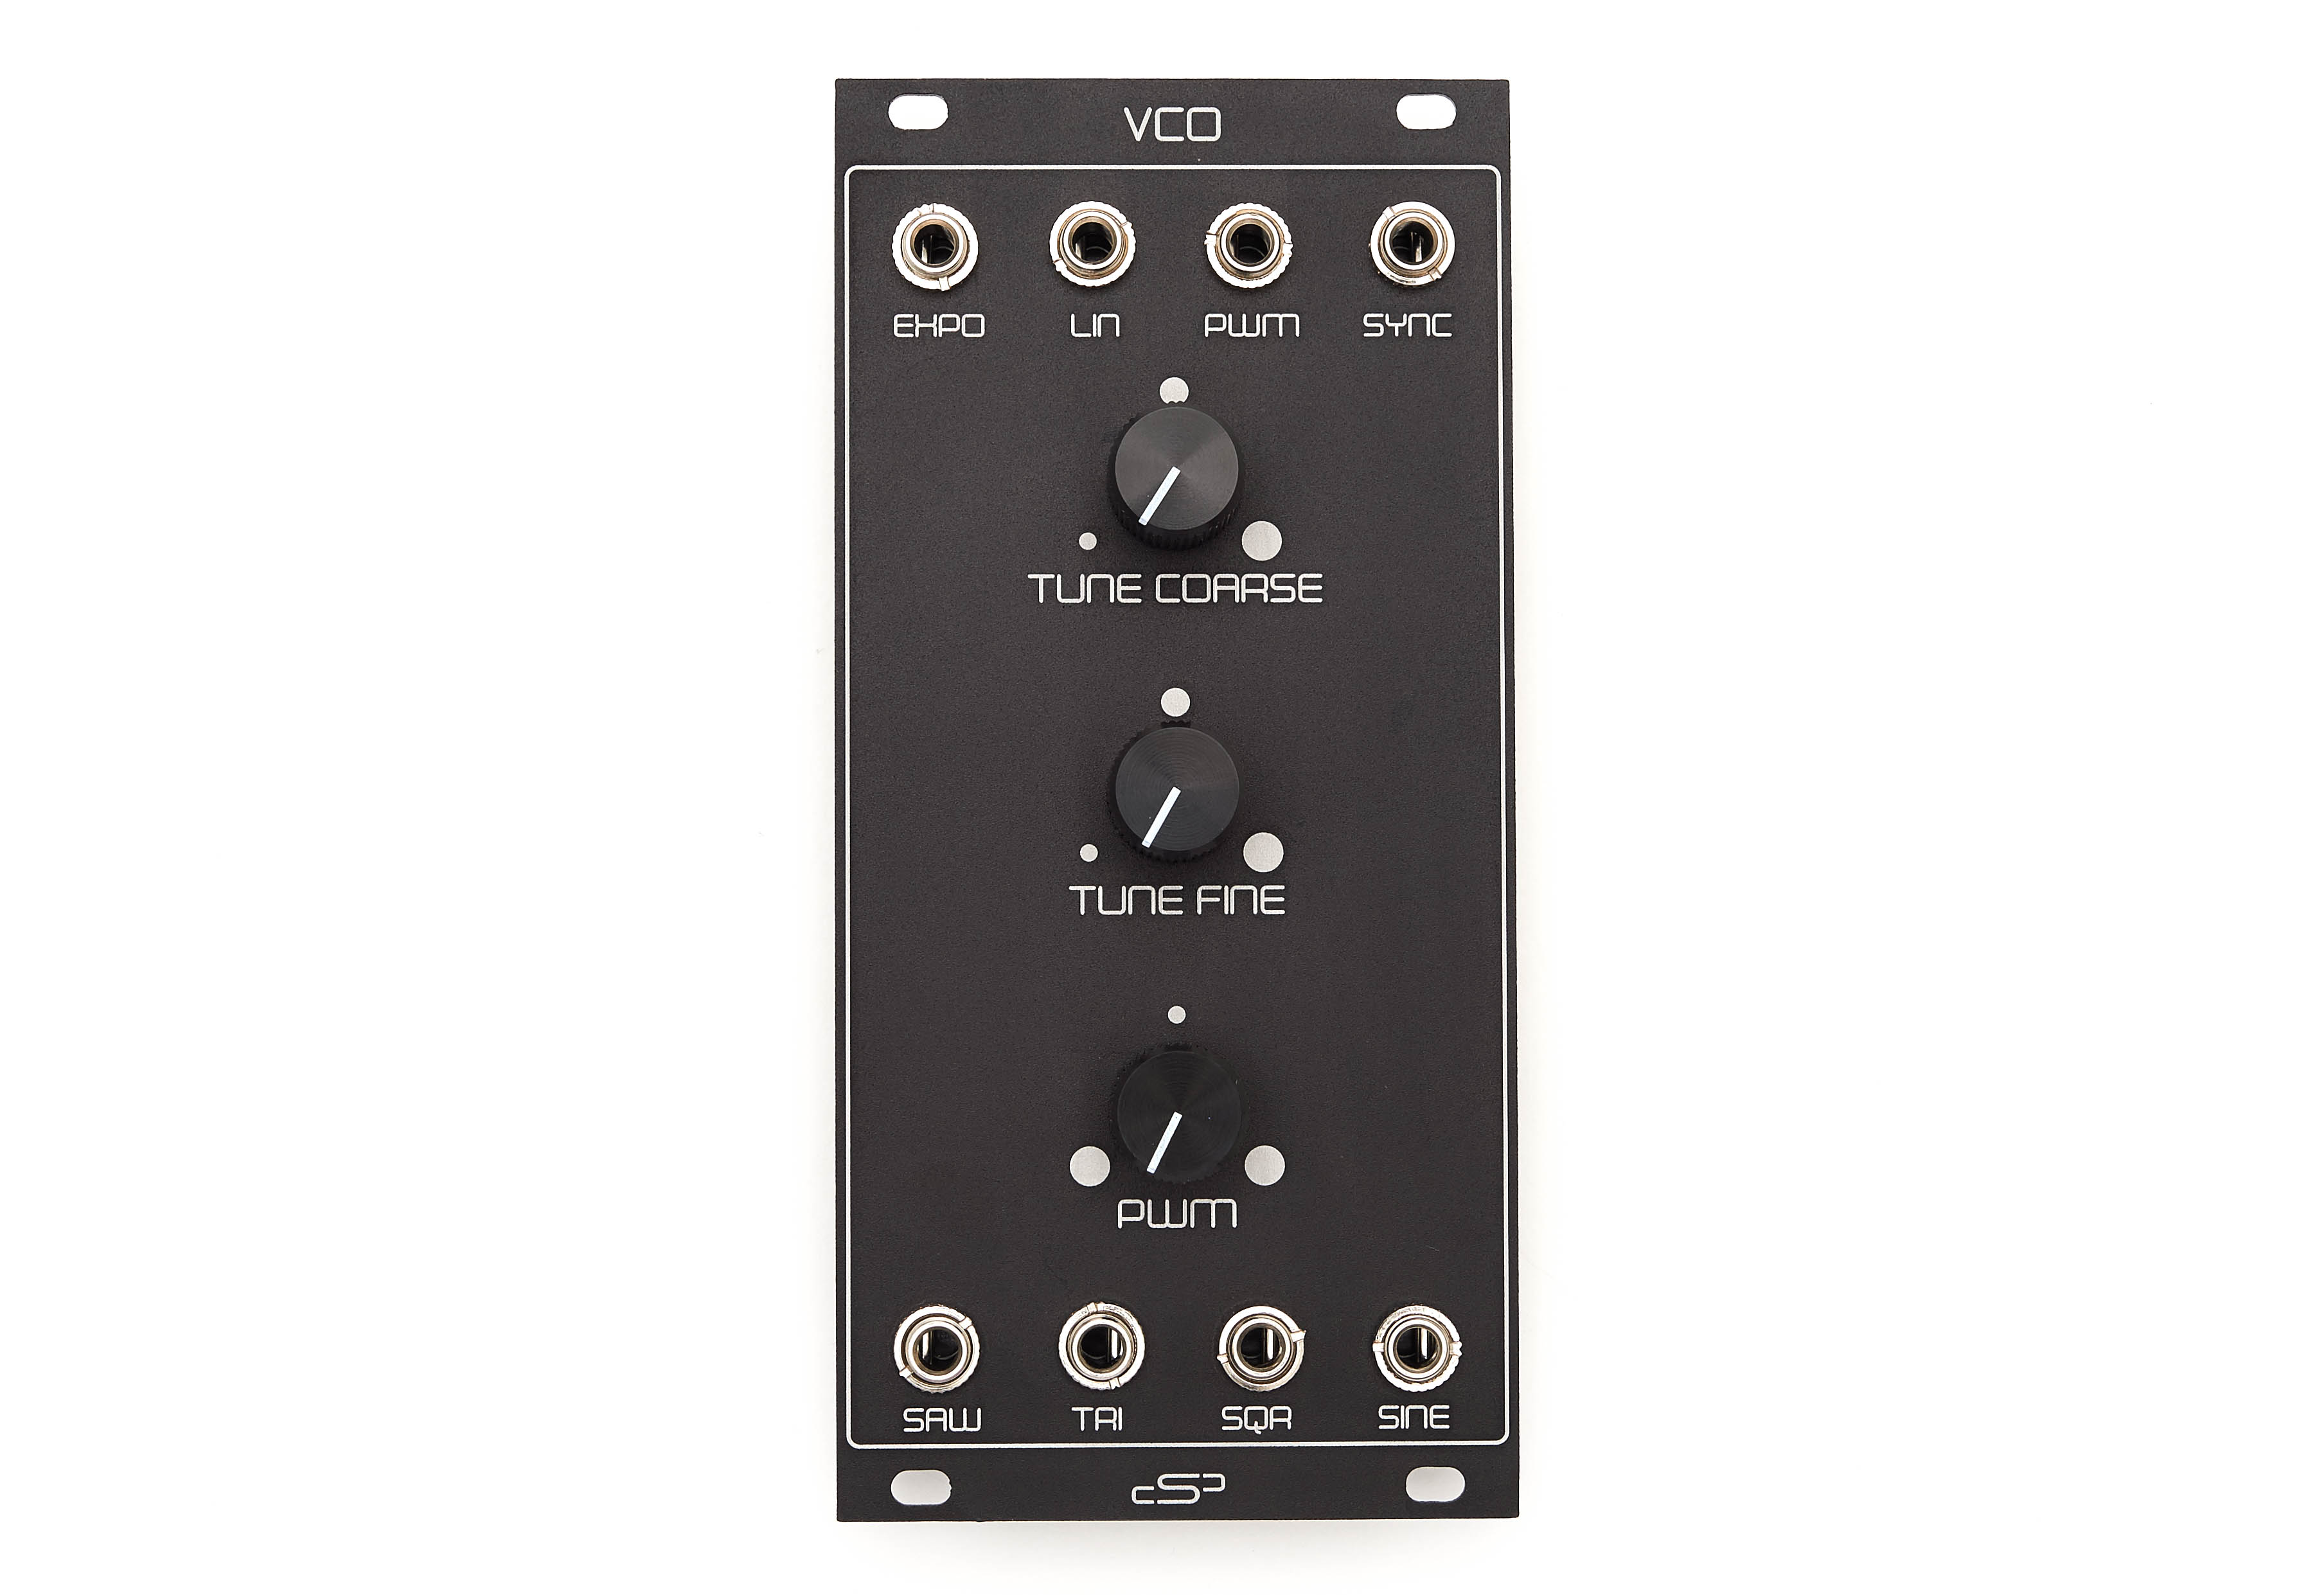 vco_front